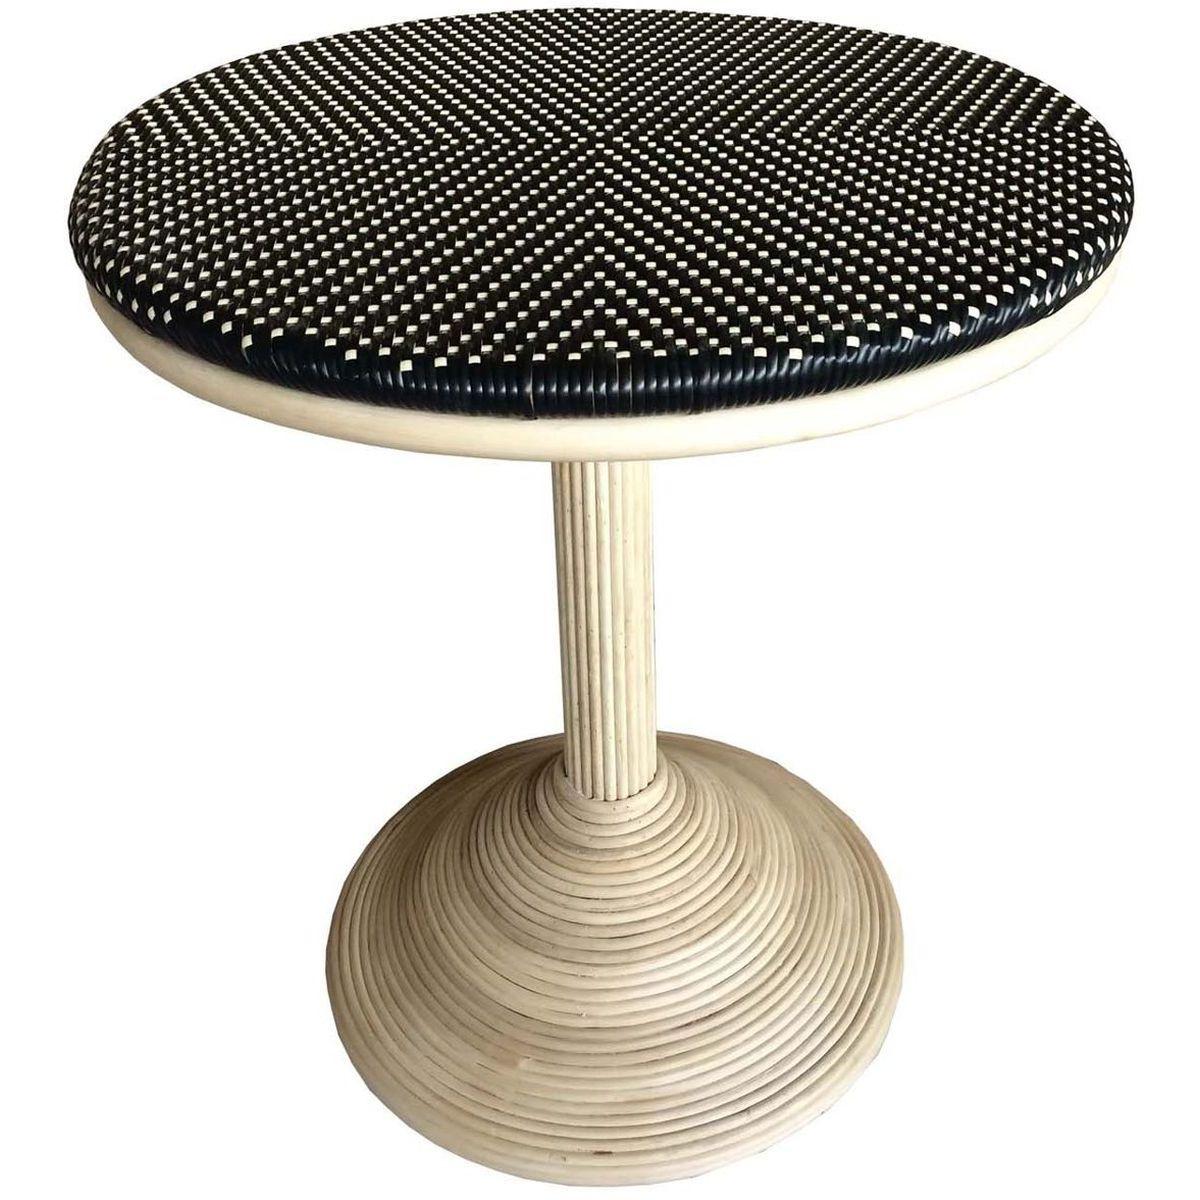 Padma French Bistro Table in Black/Beige